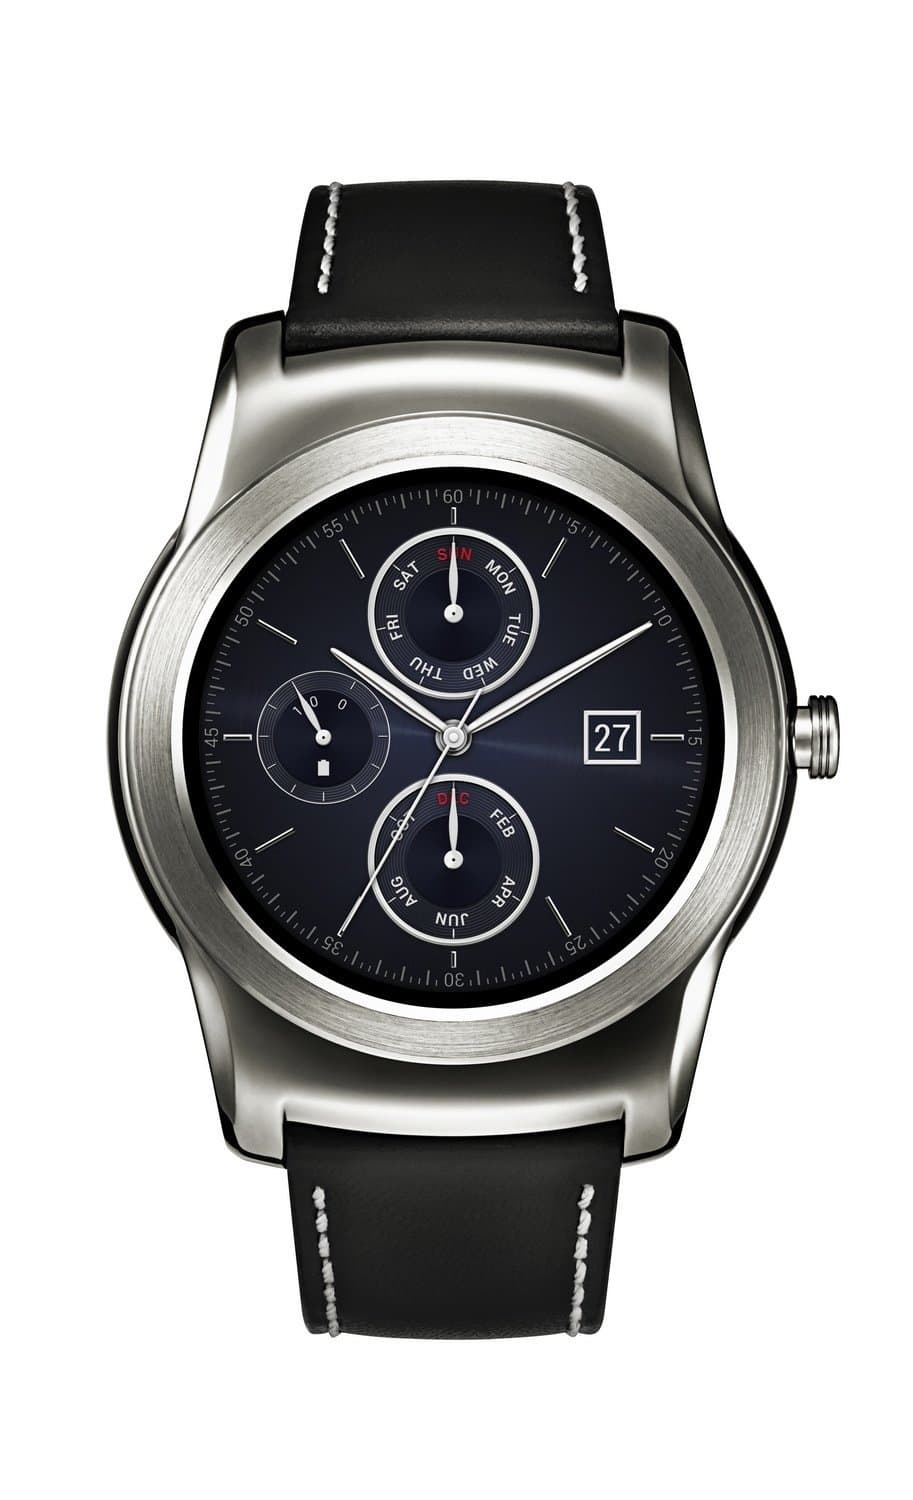 LG Urbane smartwatch Silver (1st gen)  - $99.99 FS from Verizon (back in stock)